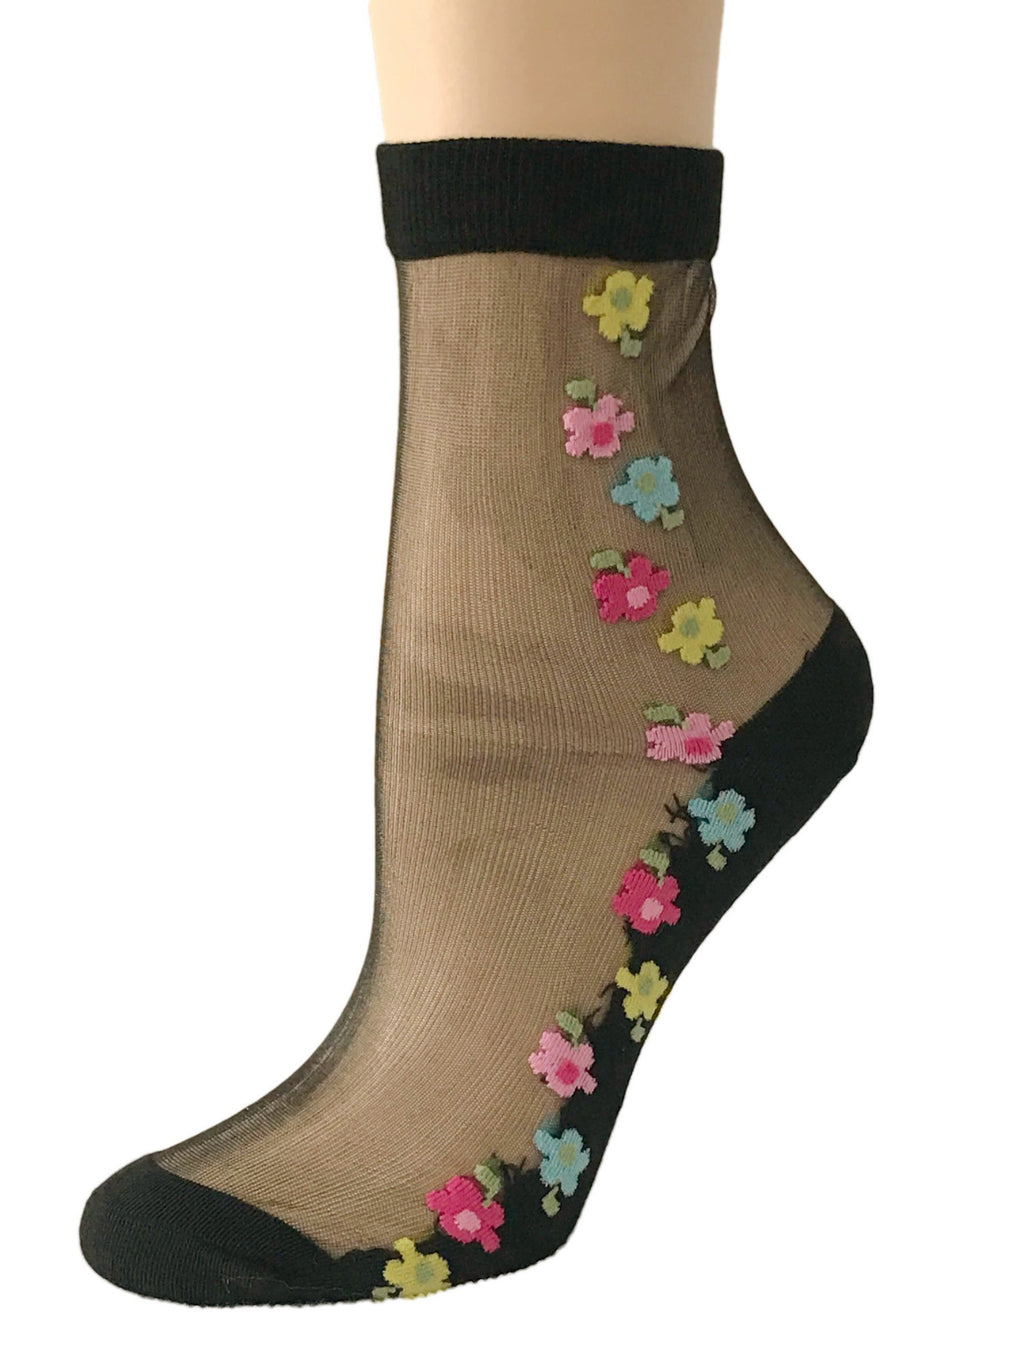 Four Color Floral Sheer Socks - Global Trendz Fashion®